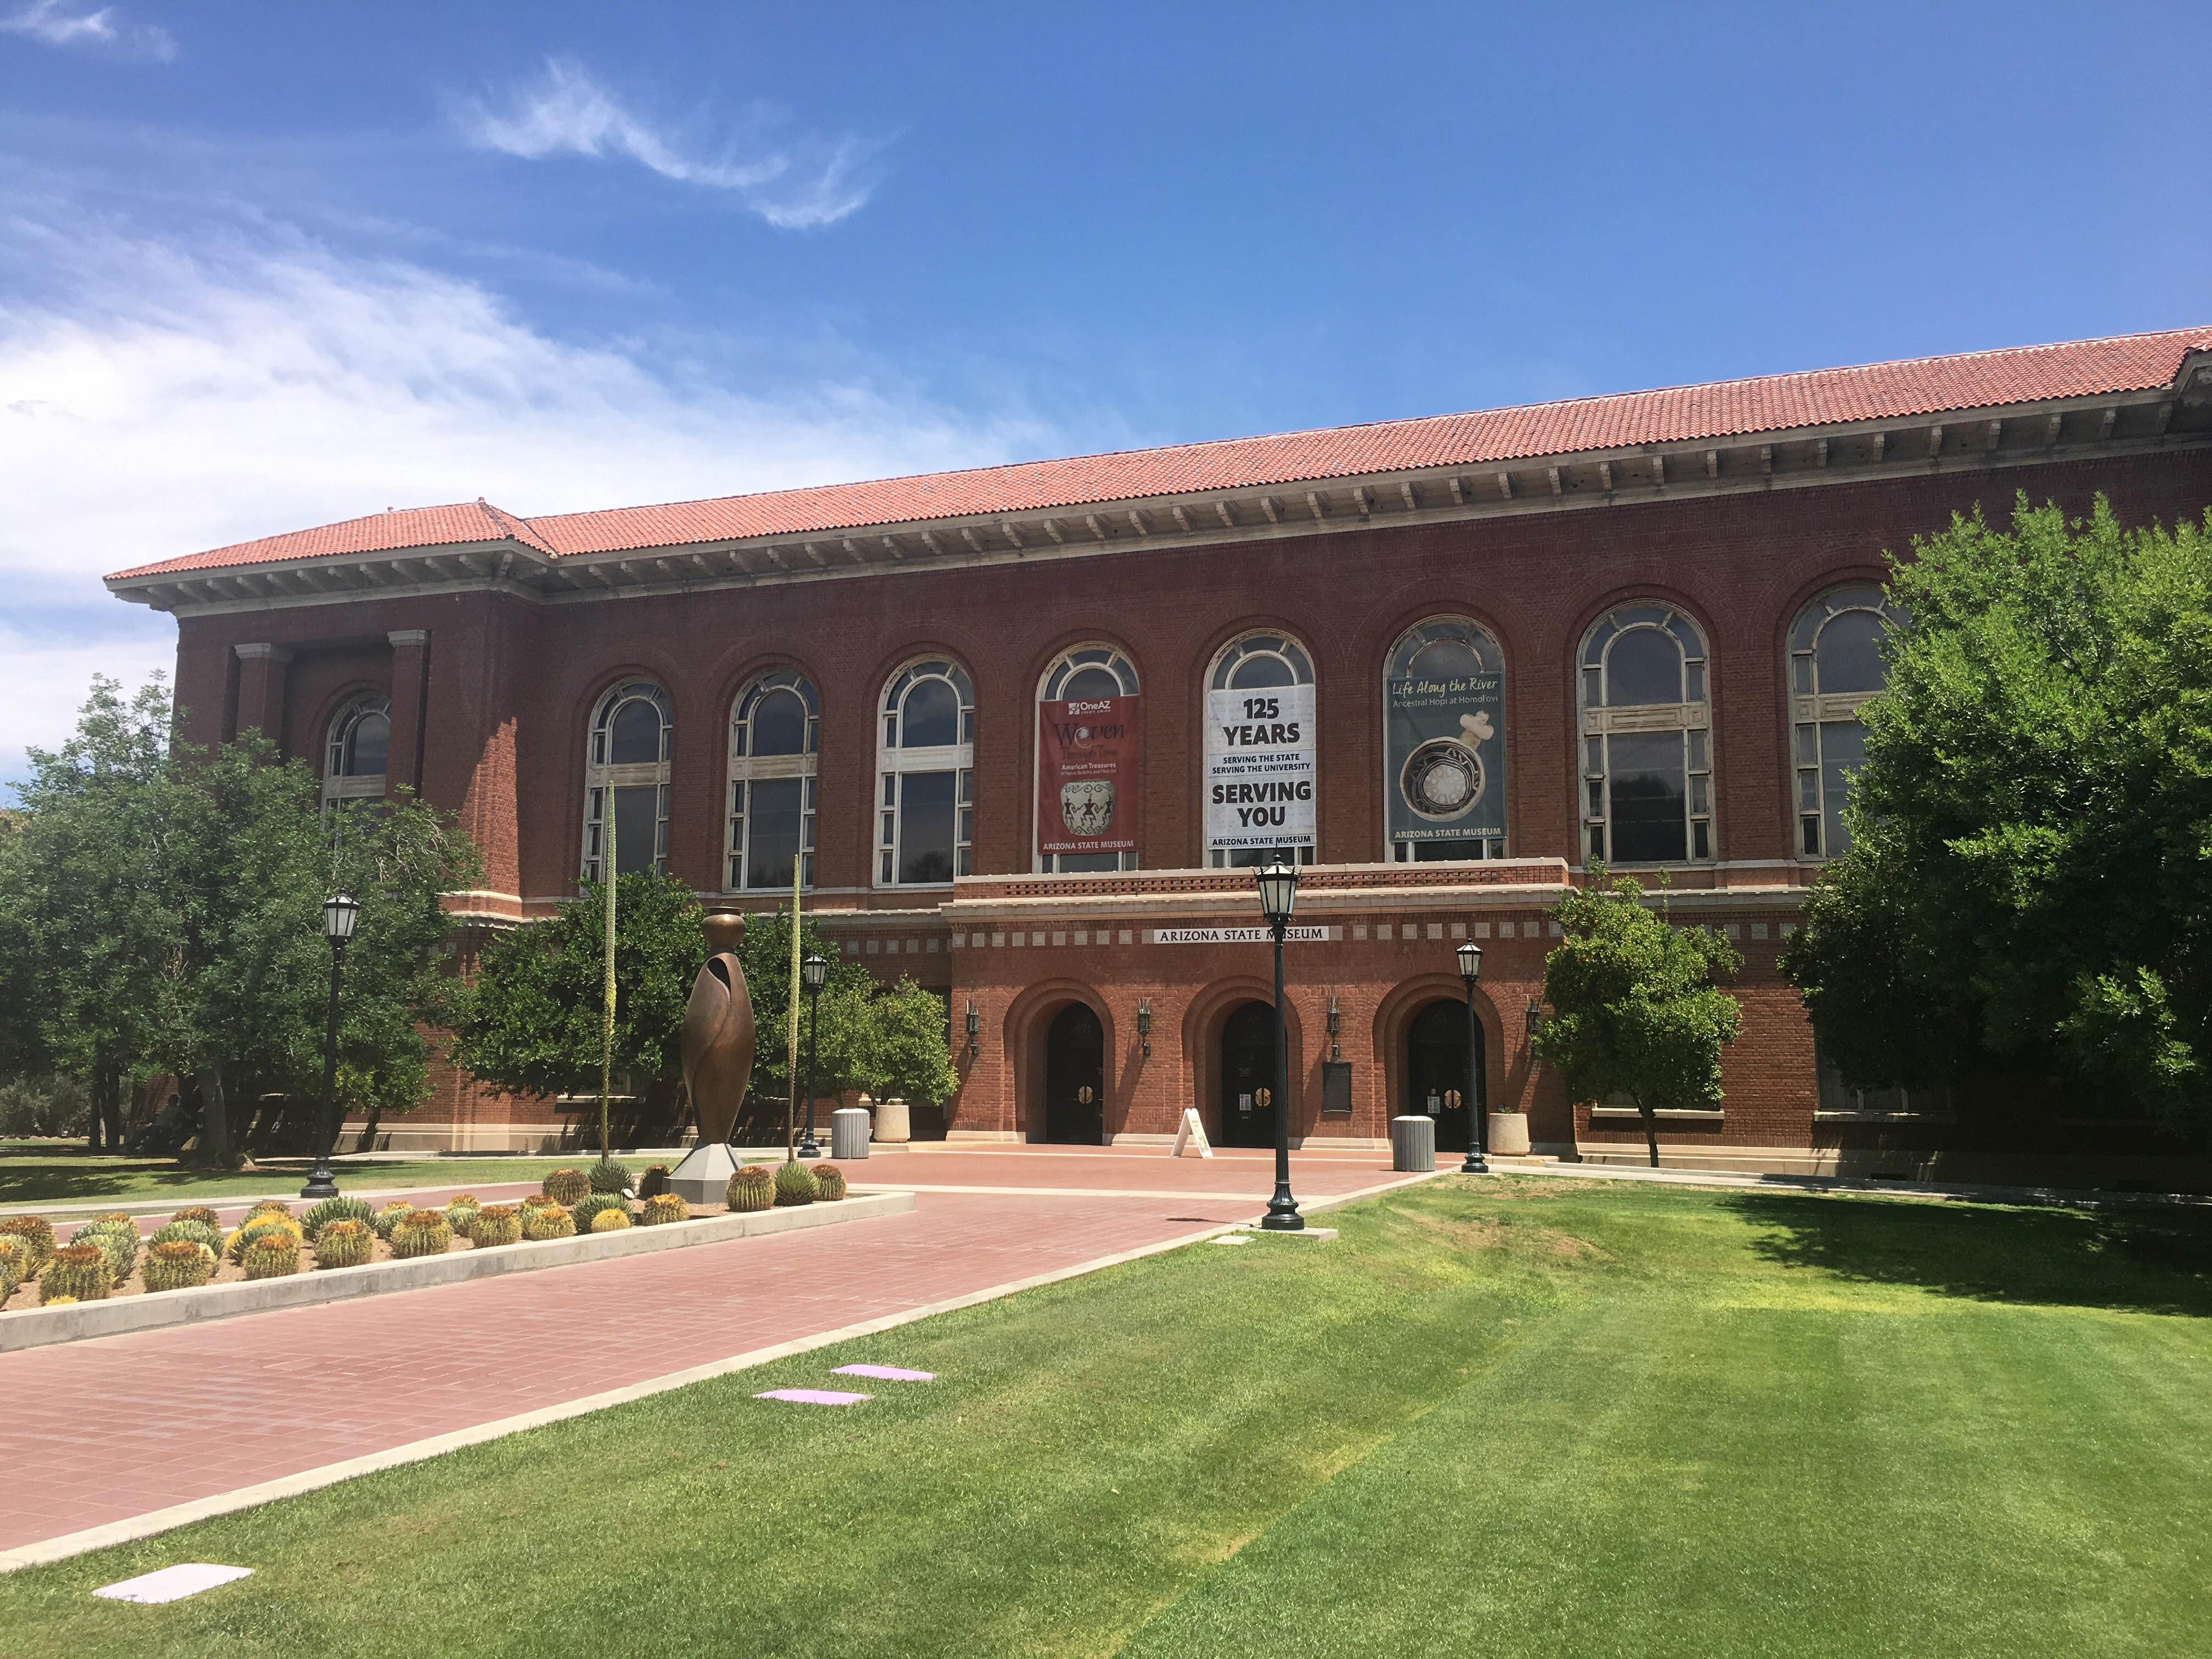 The Arizona State Museum is the oldest and largest anthropology museum in the Southwest.